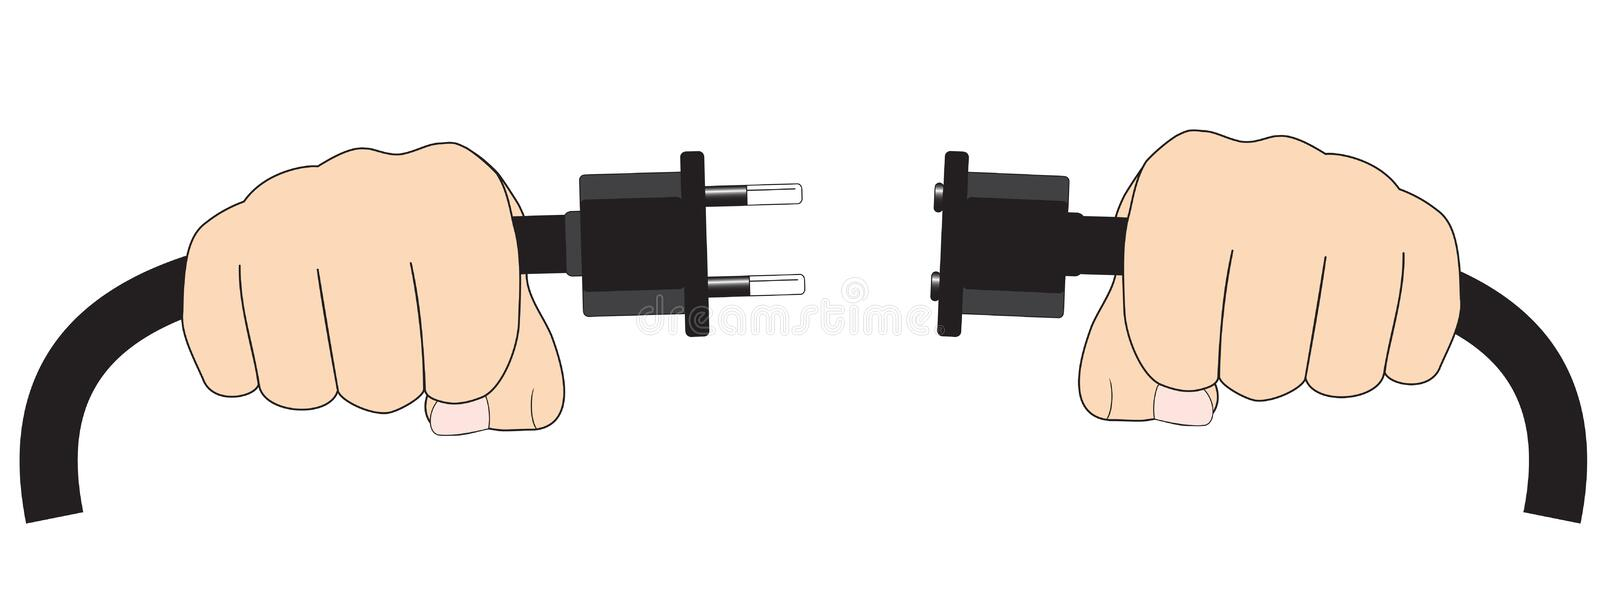 Hands with electric cable vector illustration